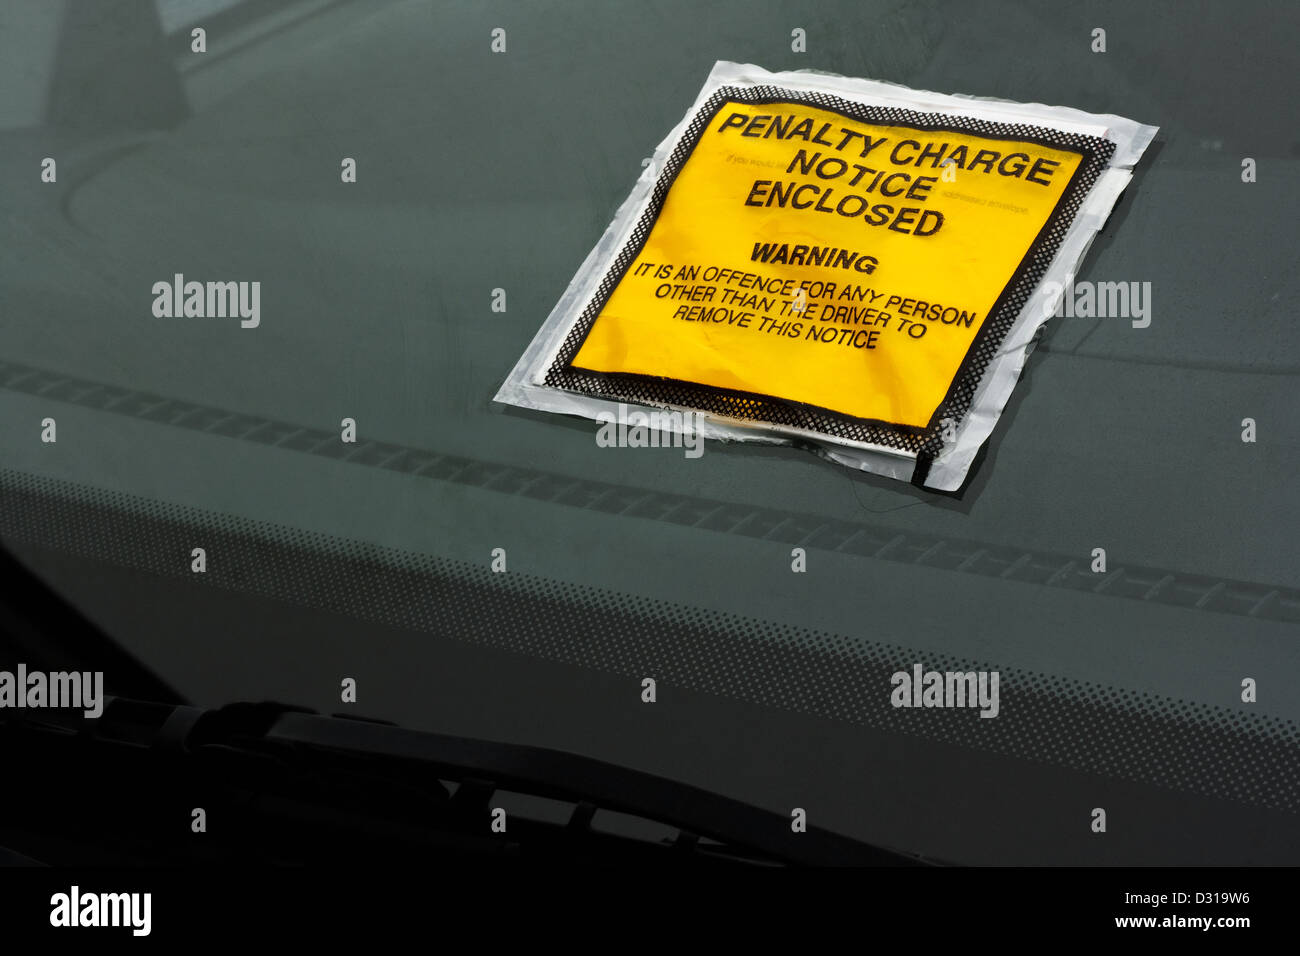 Parking ticket stuck on car windscreen a penalty or fine - Stock Image